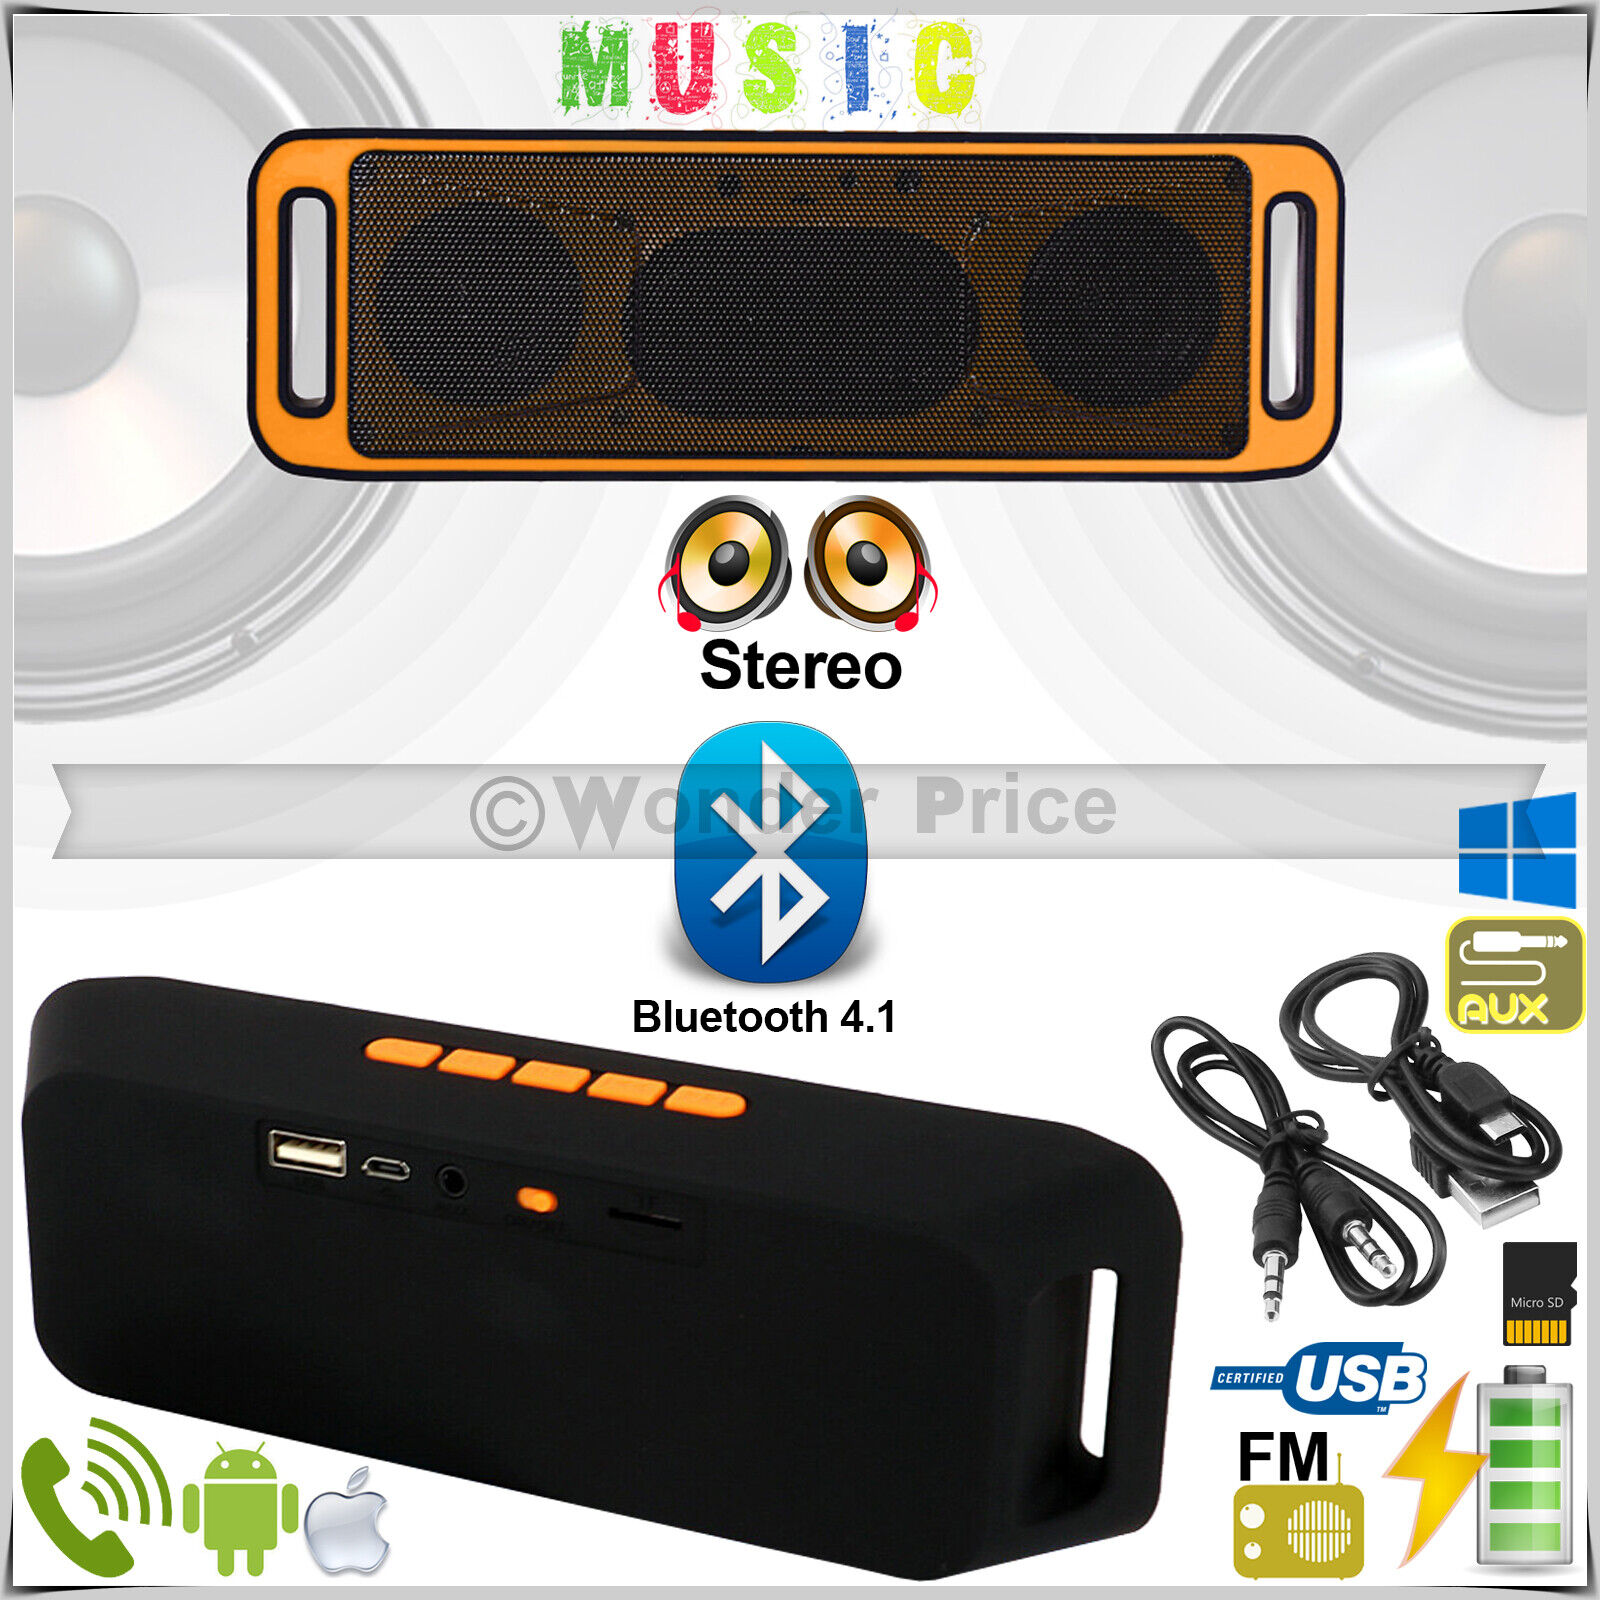 Wireless Bluetooth Speakers Bass Stereo TF Aux Radio USB For iPhone iPad Phones